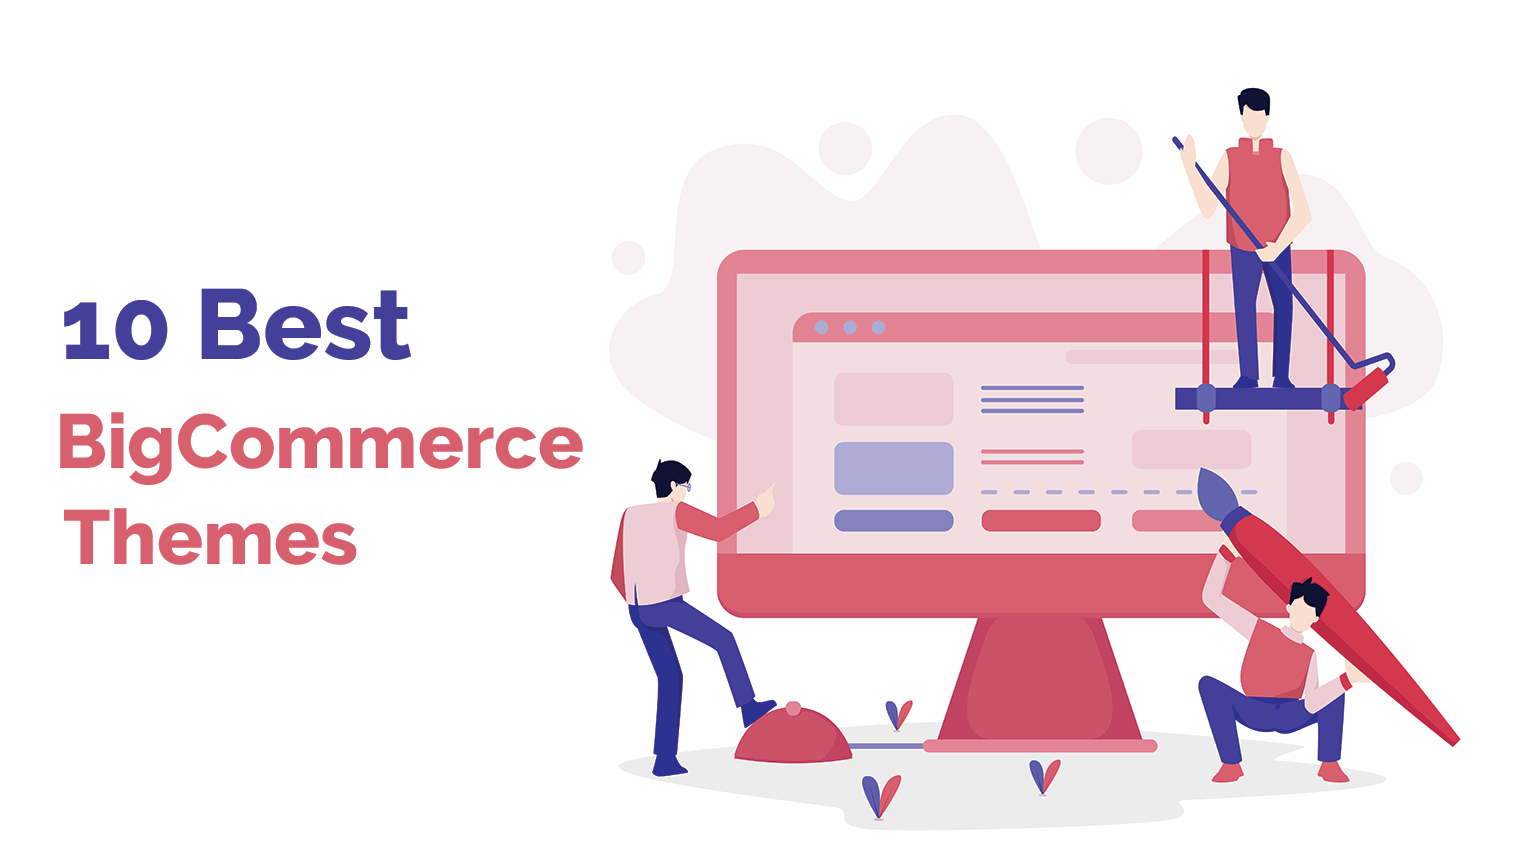 Best BigCommerce Themes